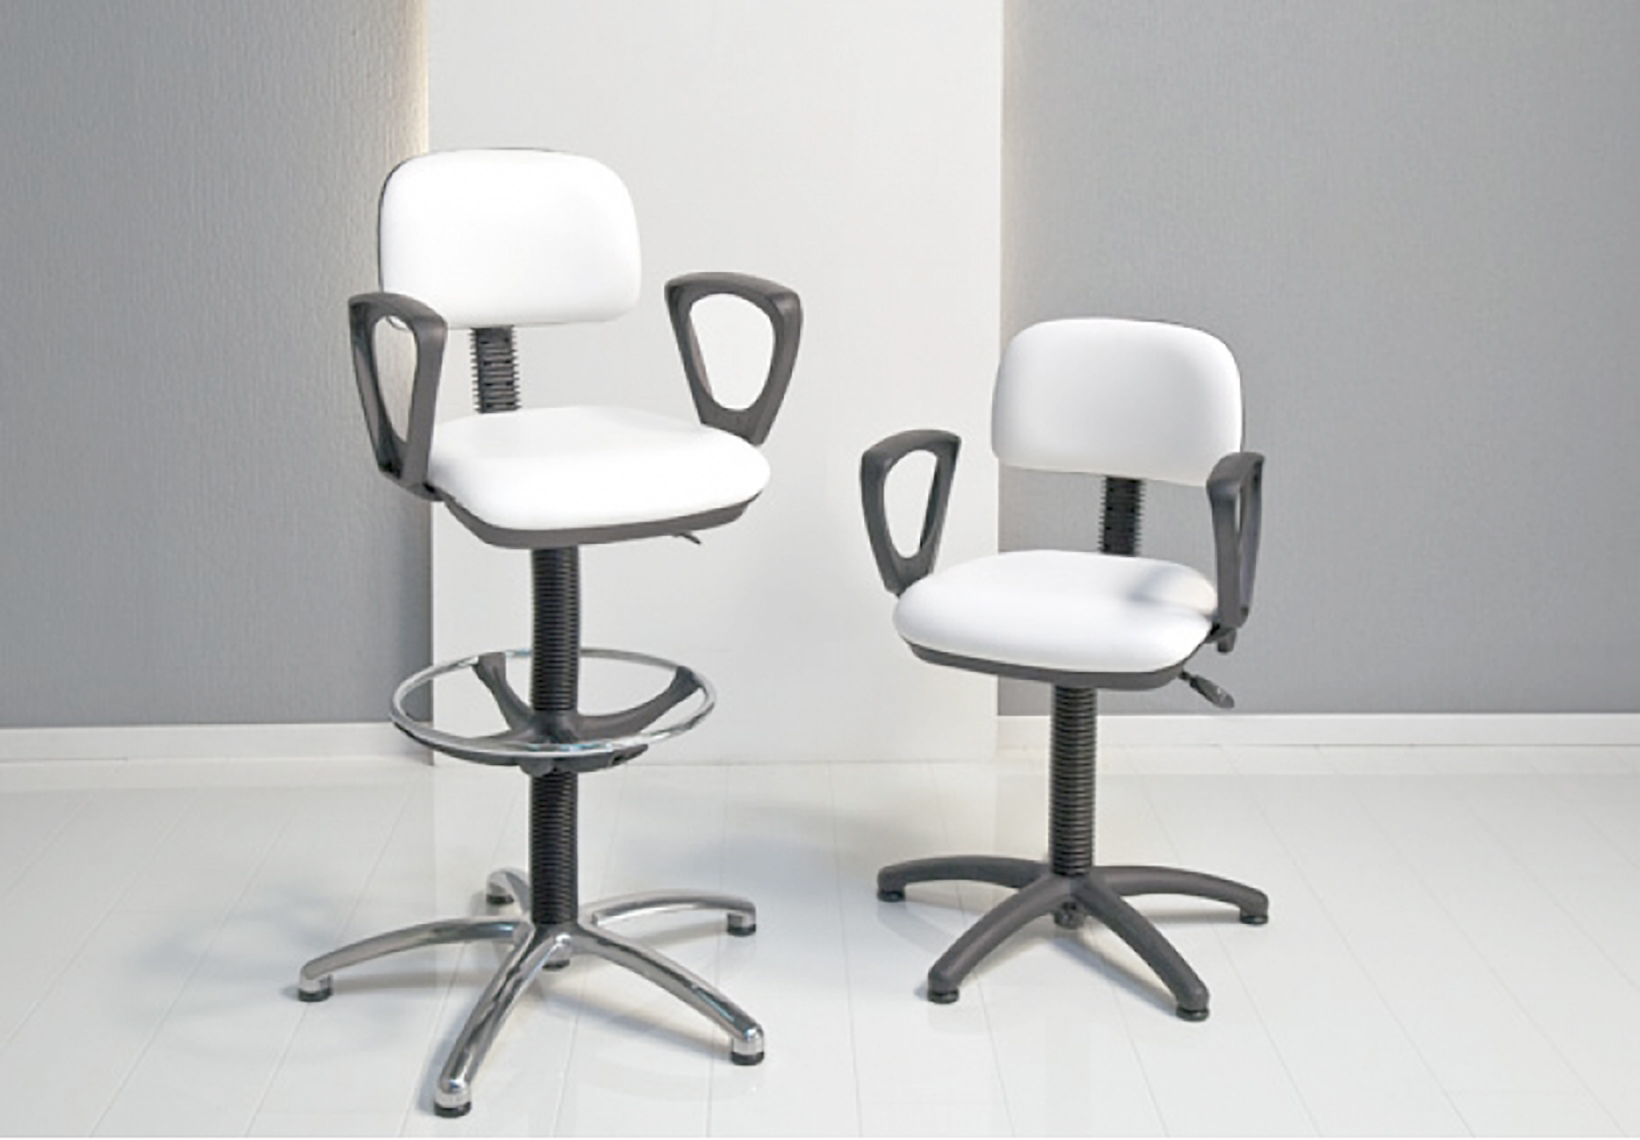 Make-Up Chair with Armrests